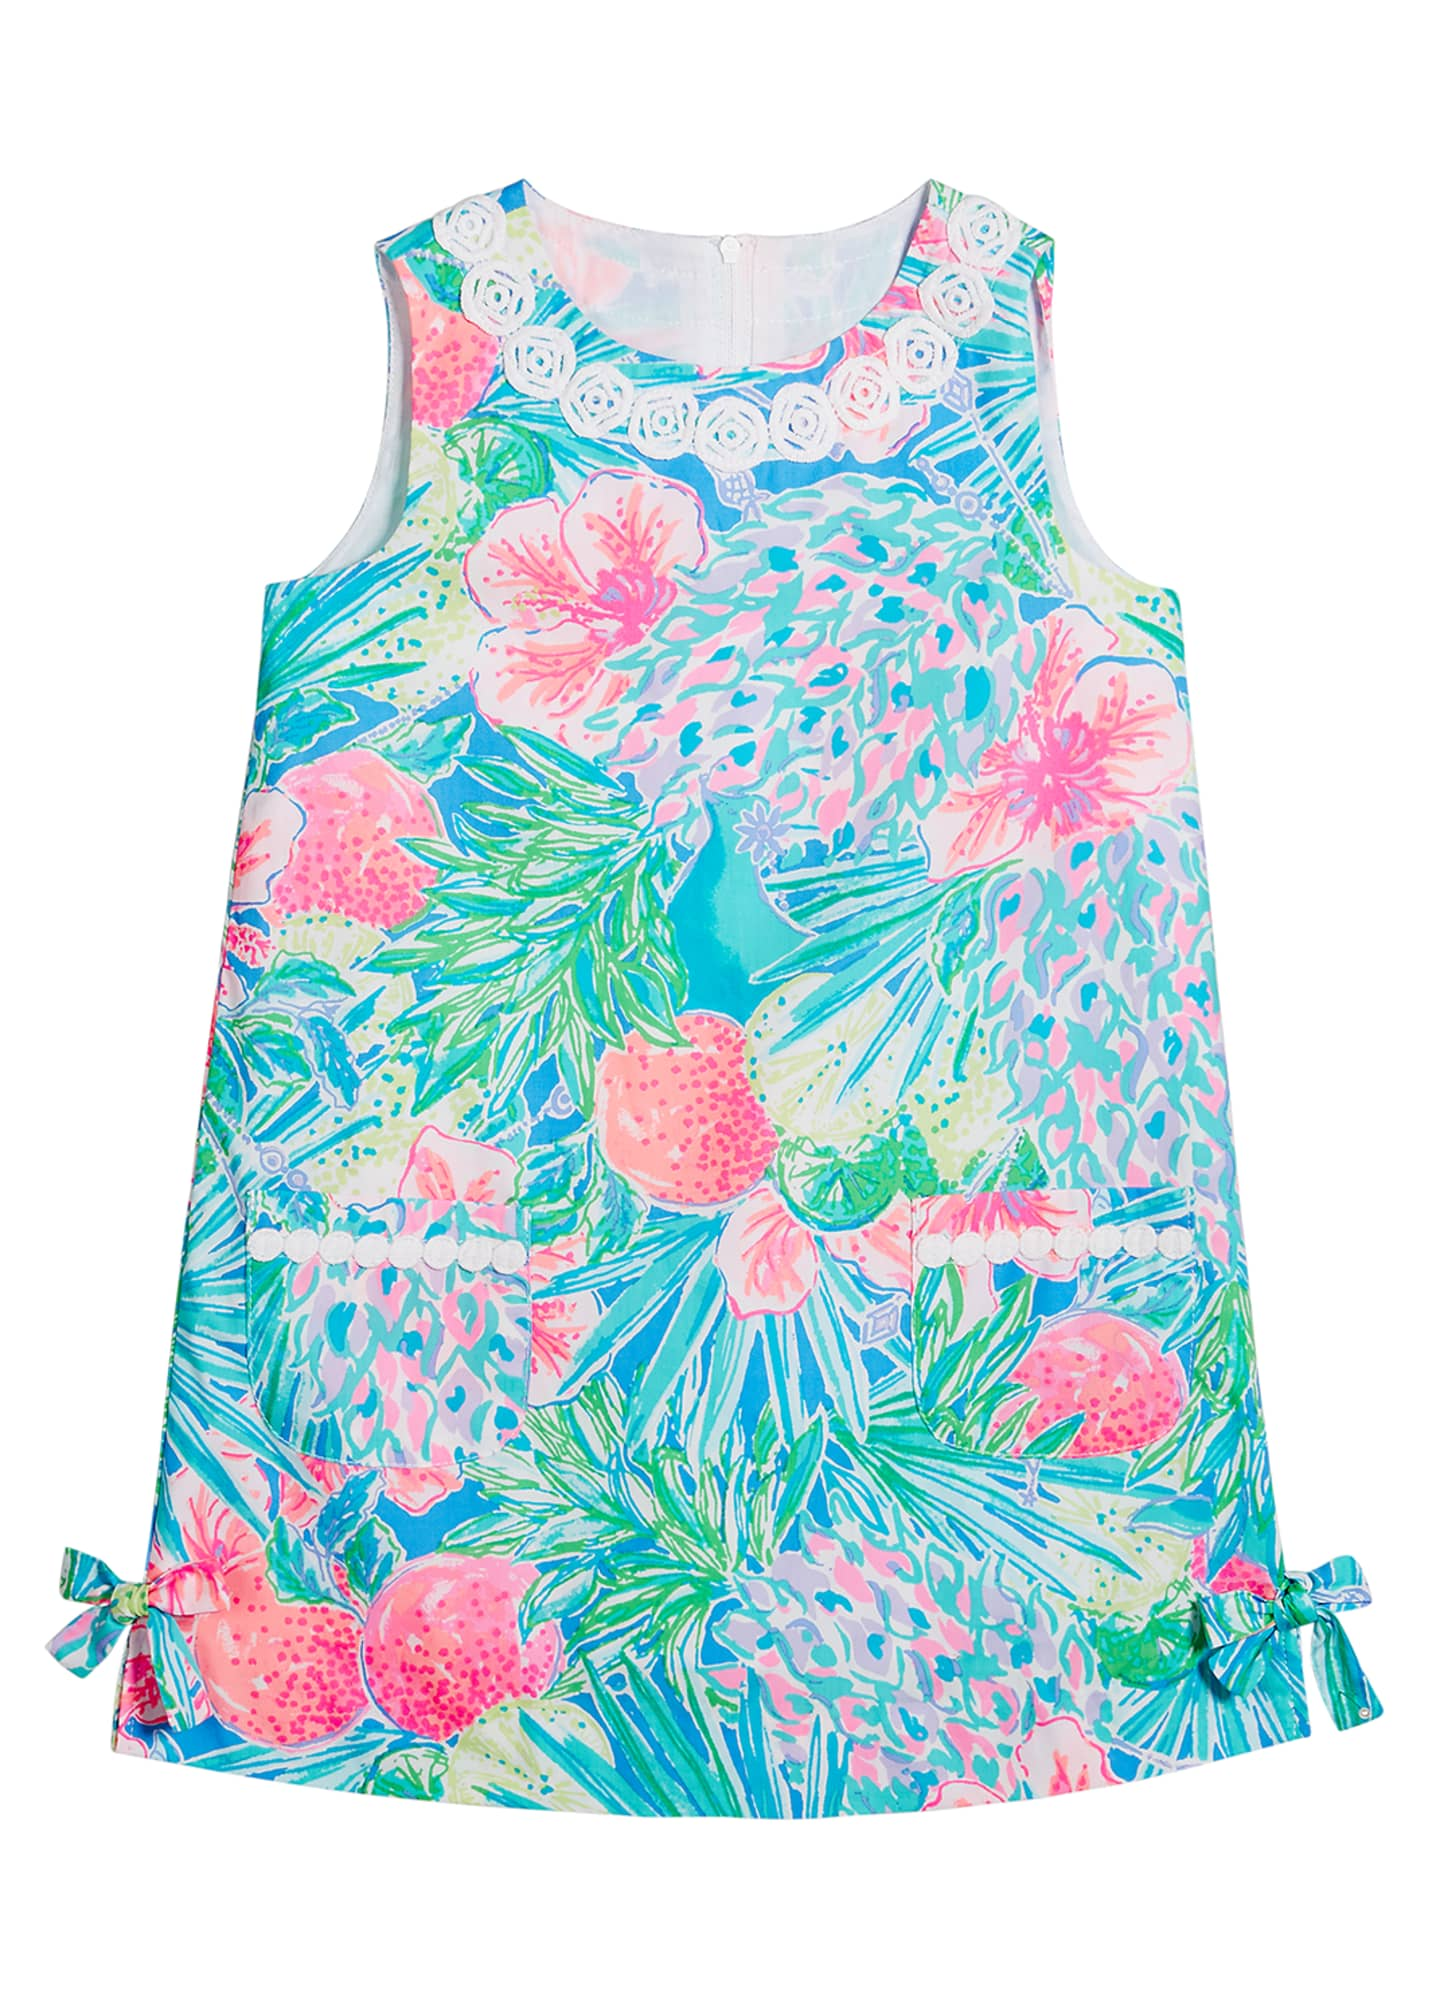 Lilly Pulitzer Girl's Little Lilly Sleeveless Shift Dress,